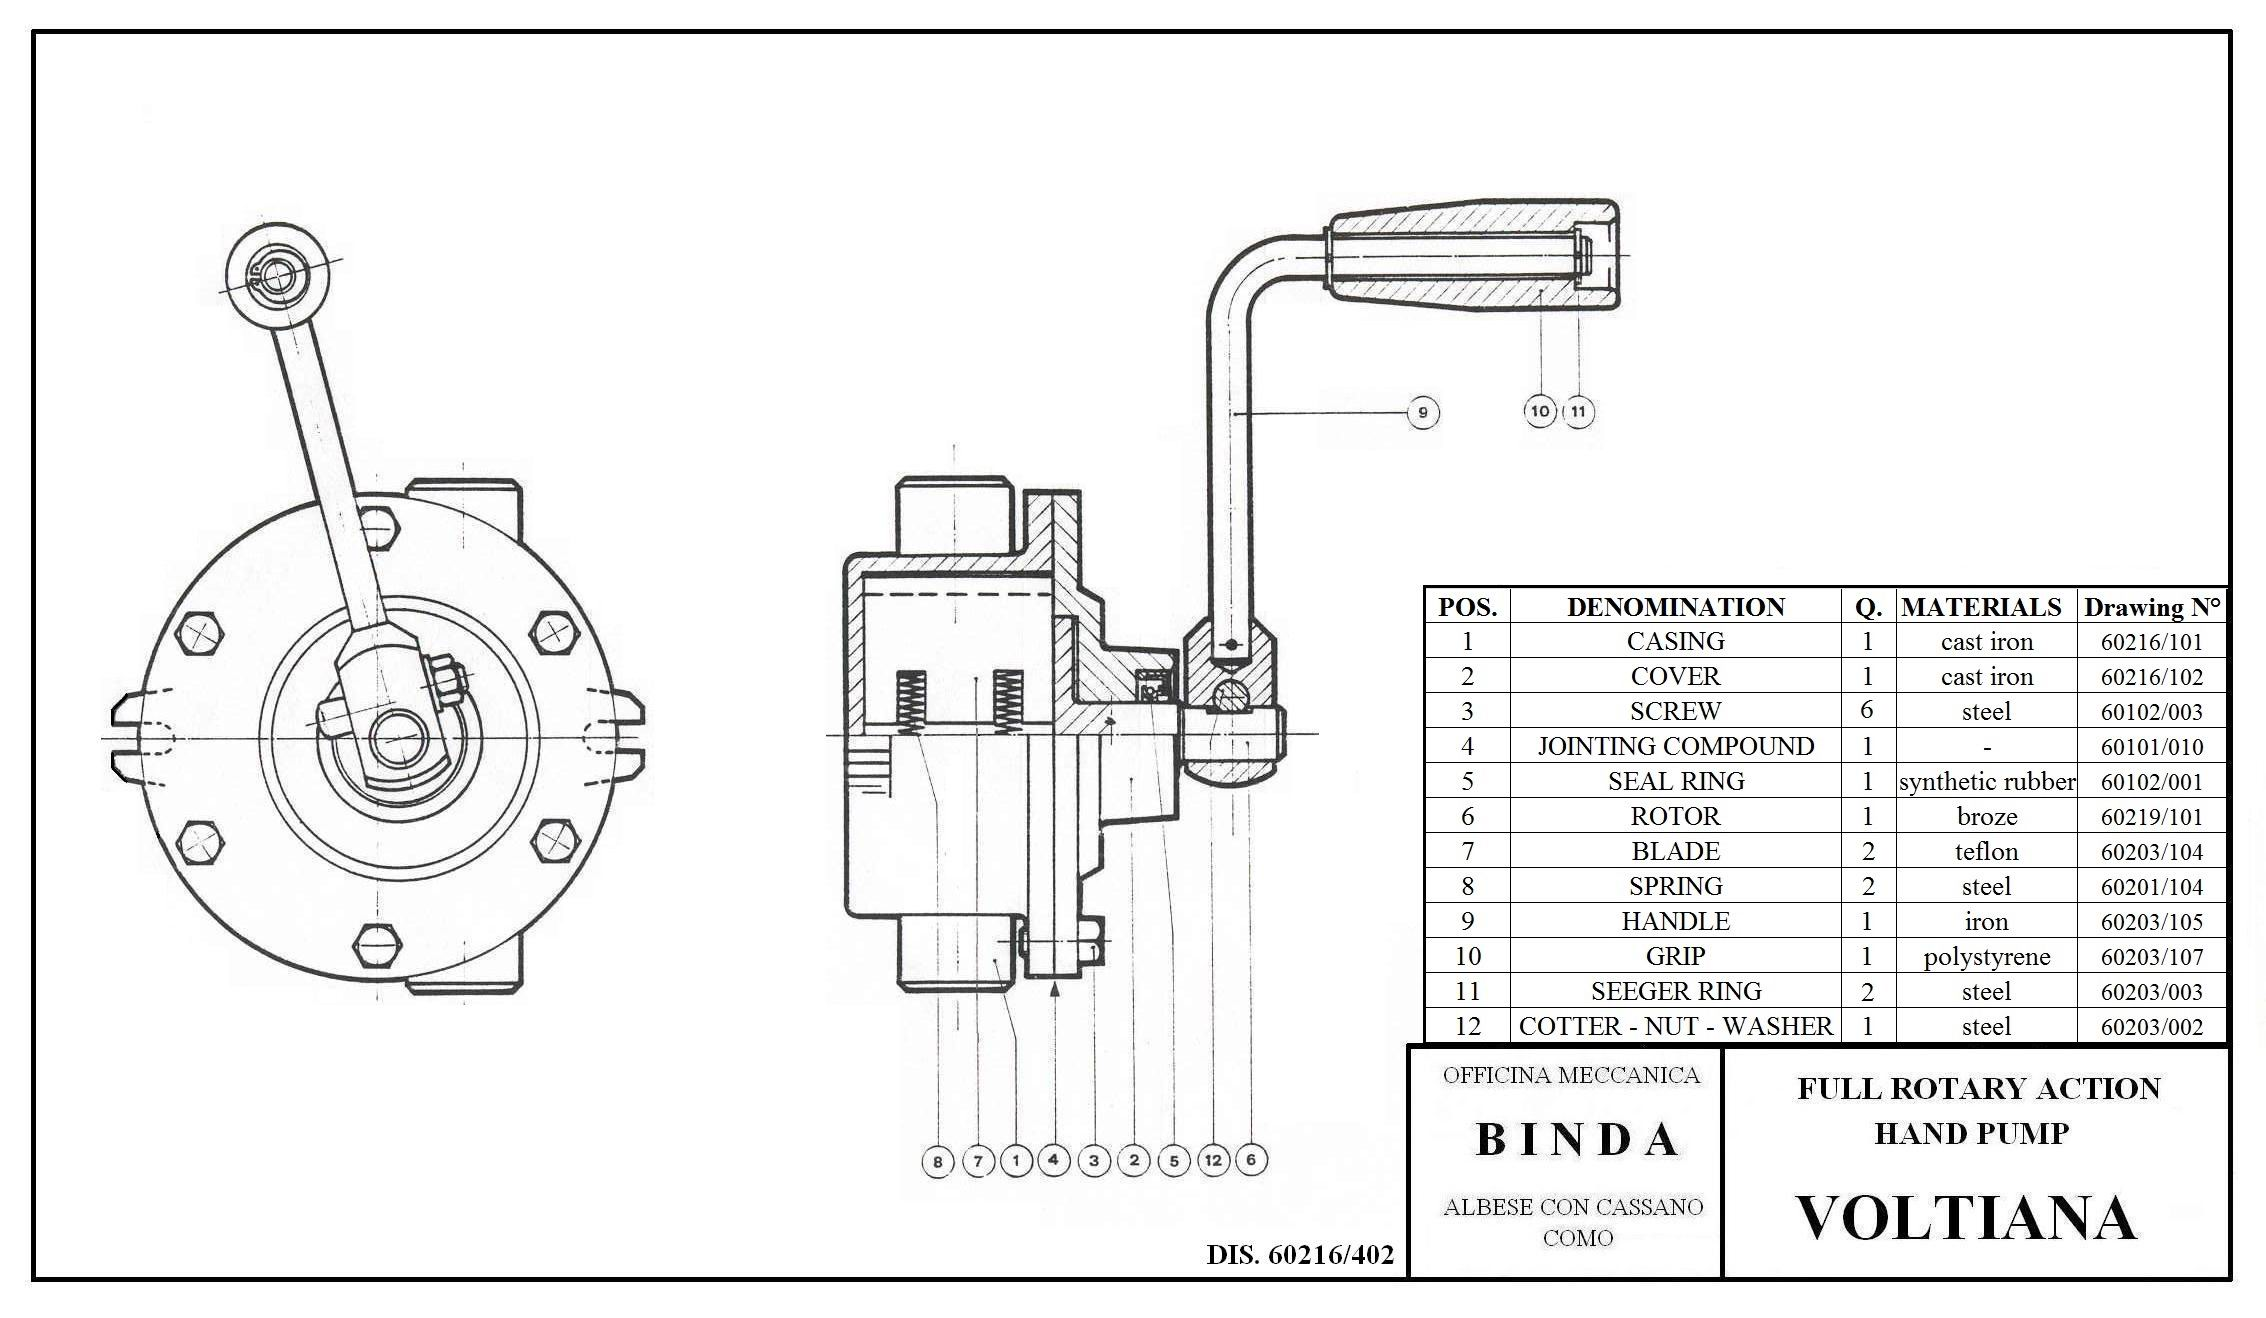 Binda Voltiana Rotary Hand Pump Amp Manual Pump